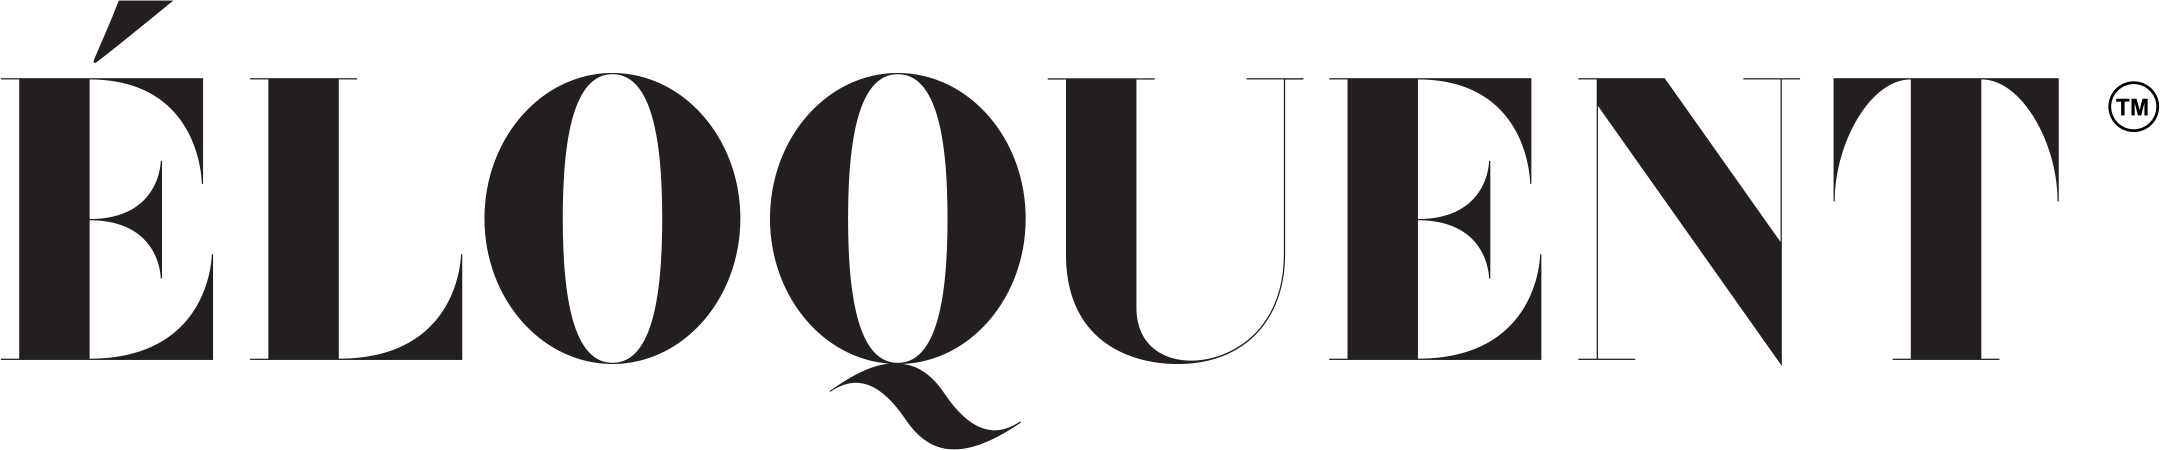 Fashion magazine logo png. Eloquent woman a women